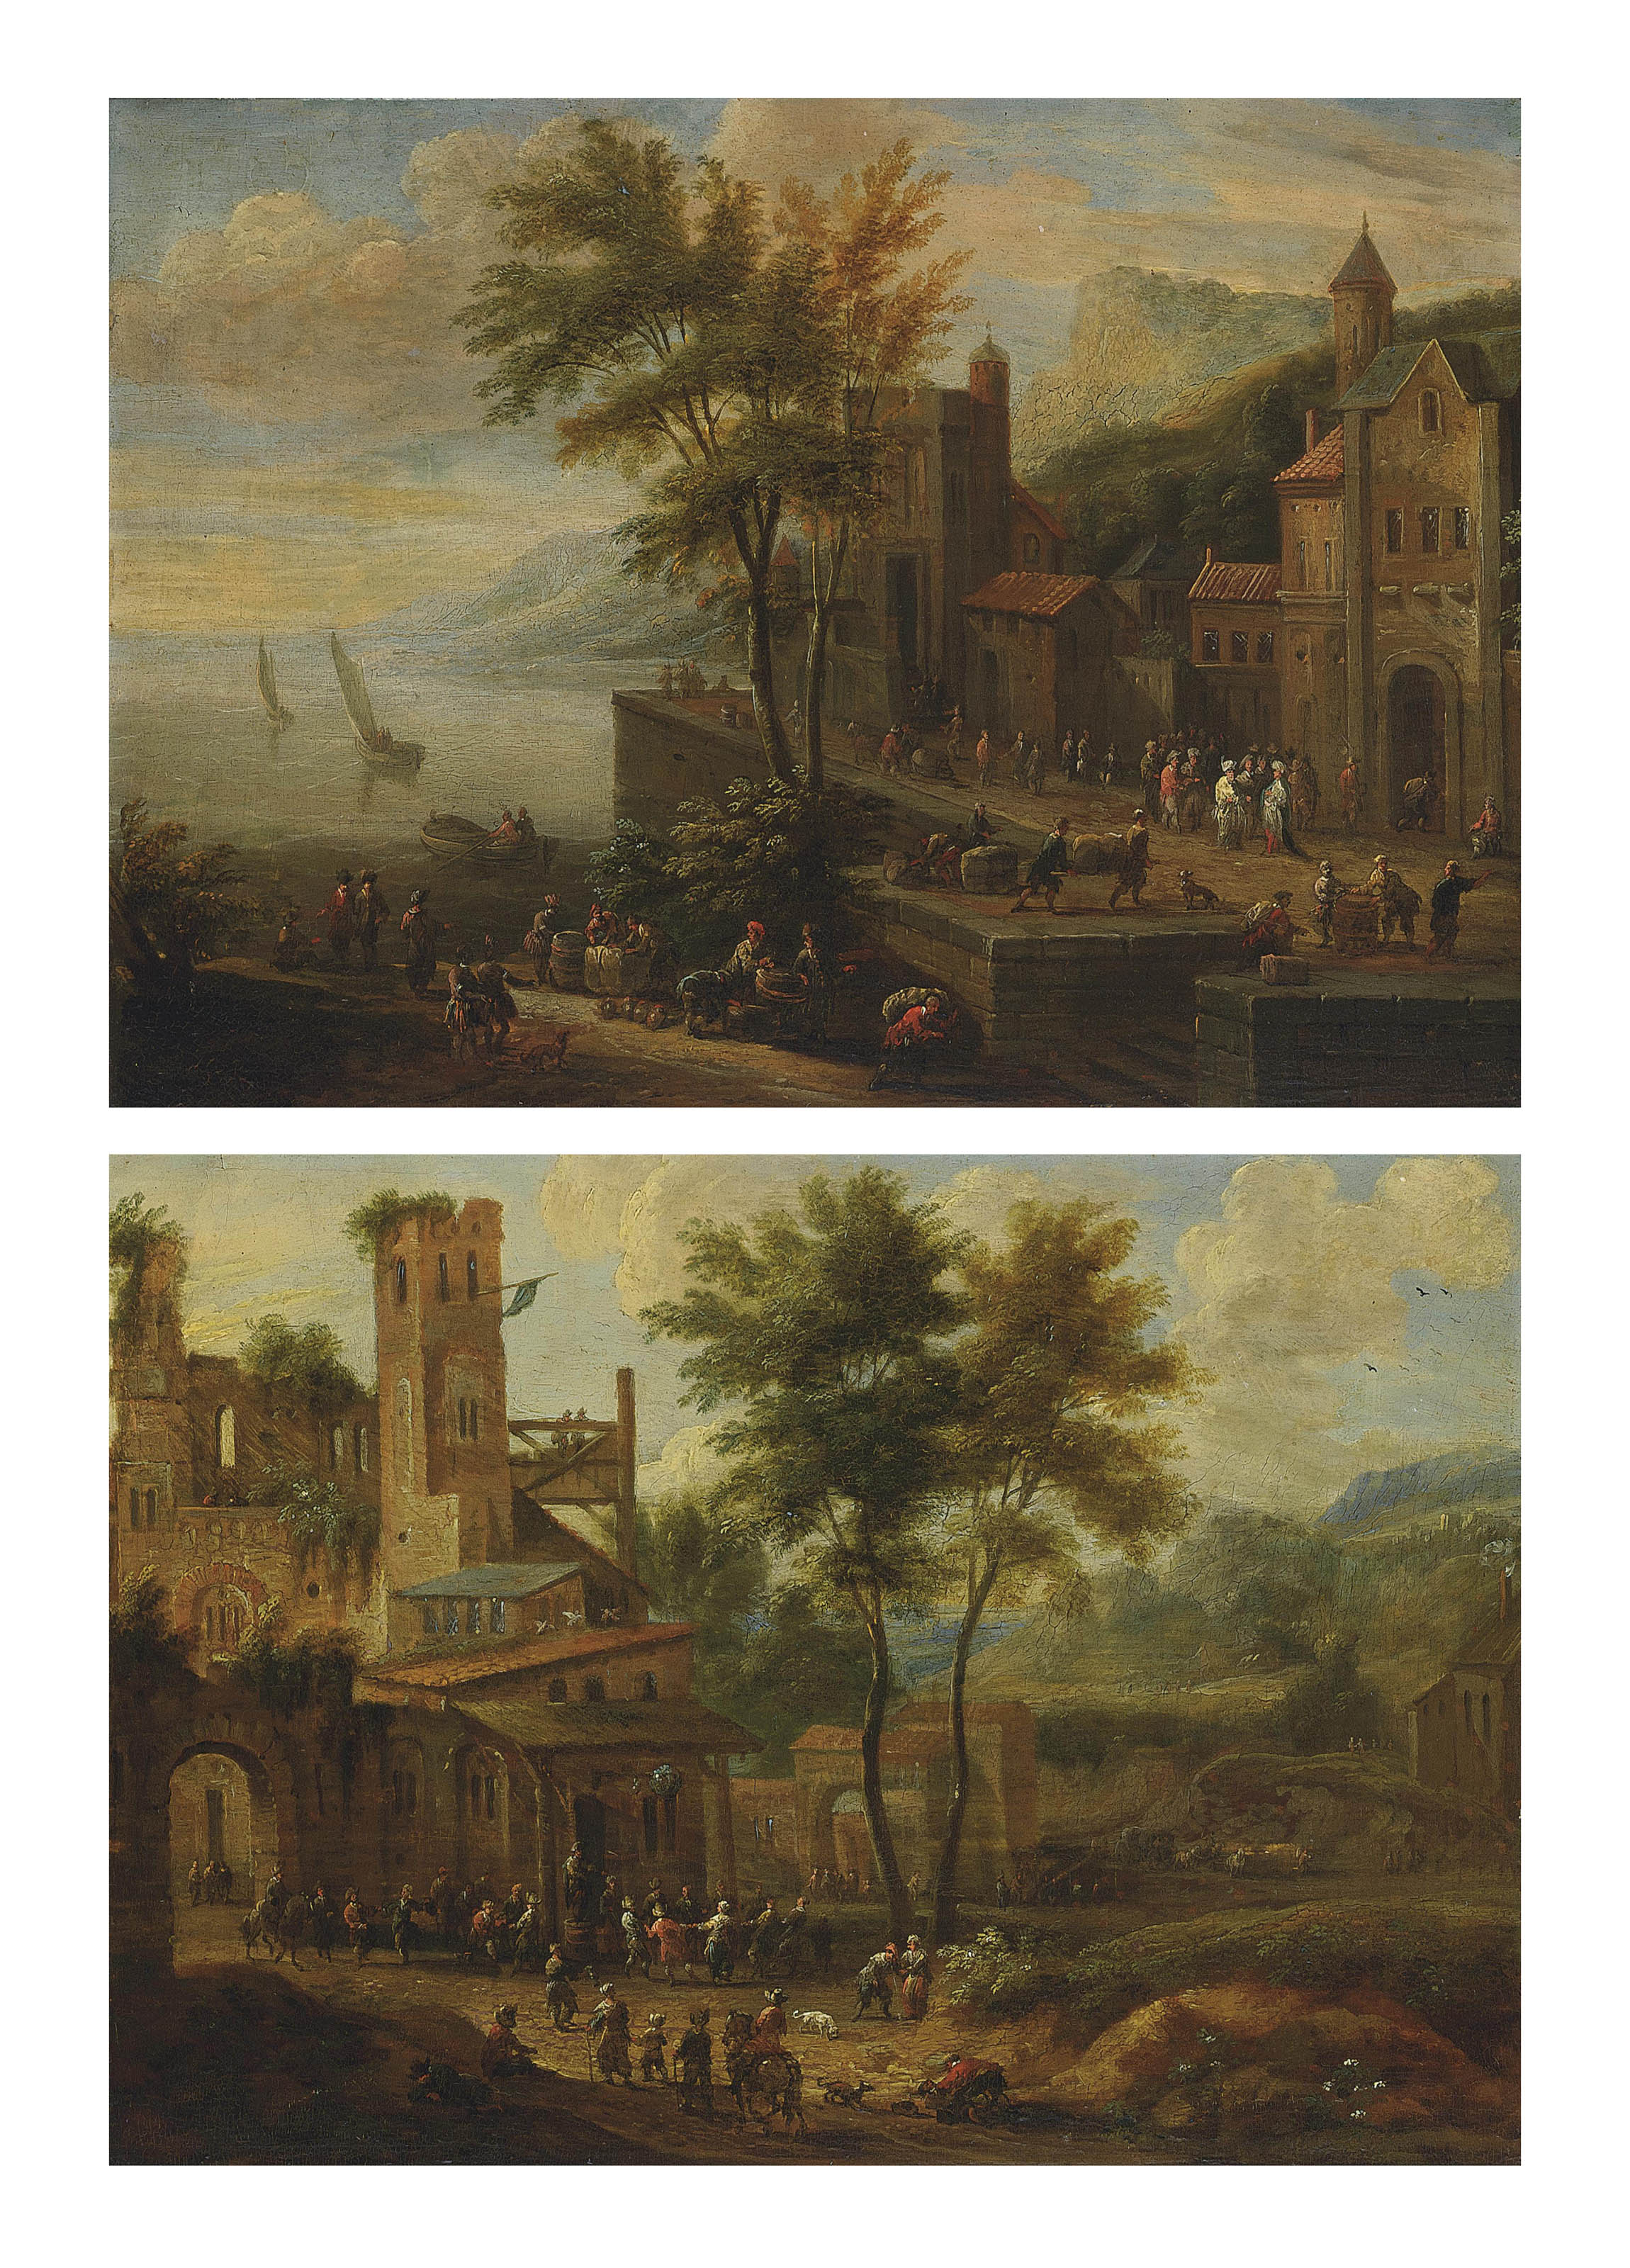 Peasants merrymaking on the outskirts of a village; and A coastal landscape with figures on the promenade